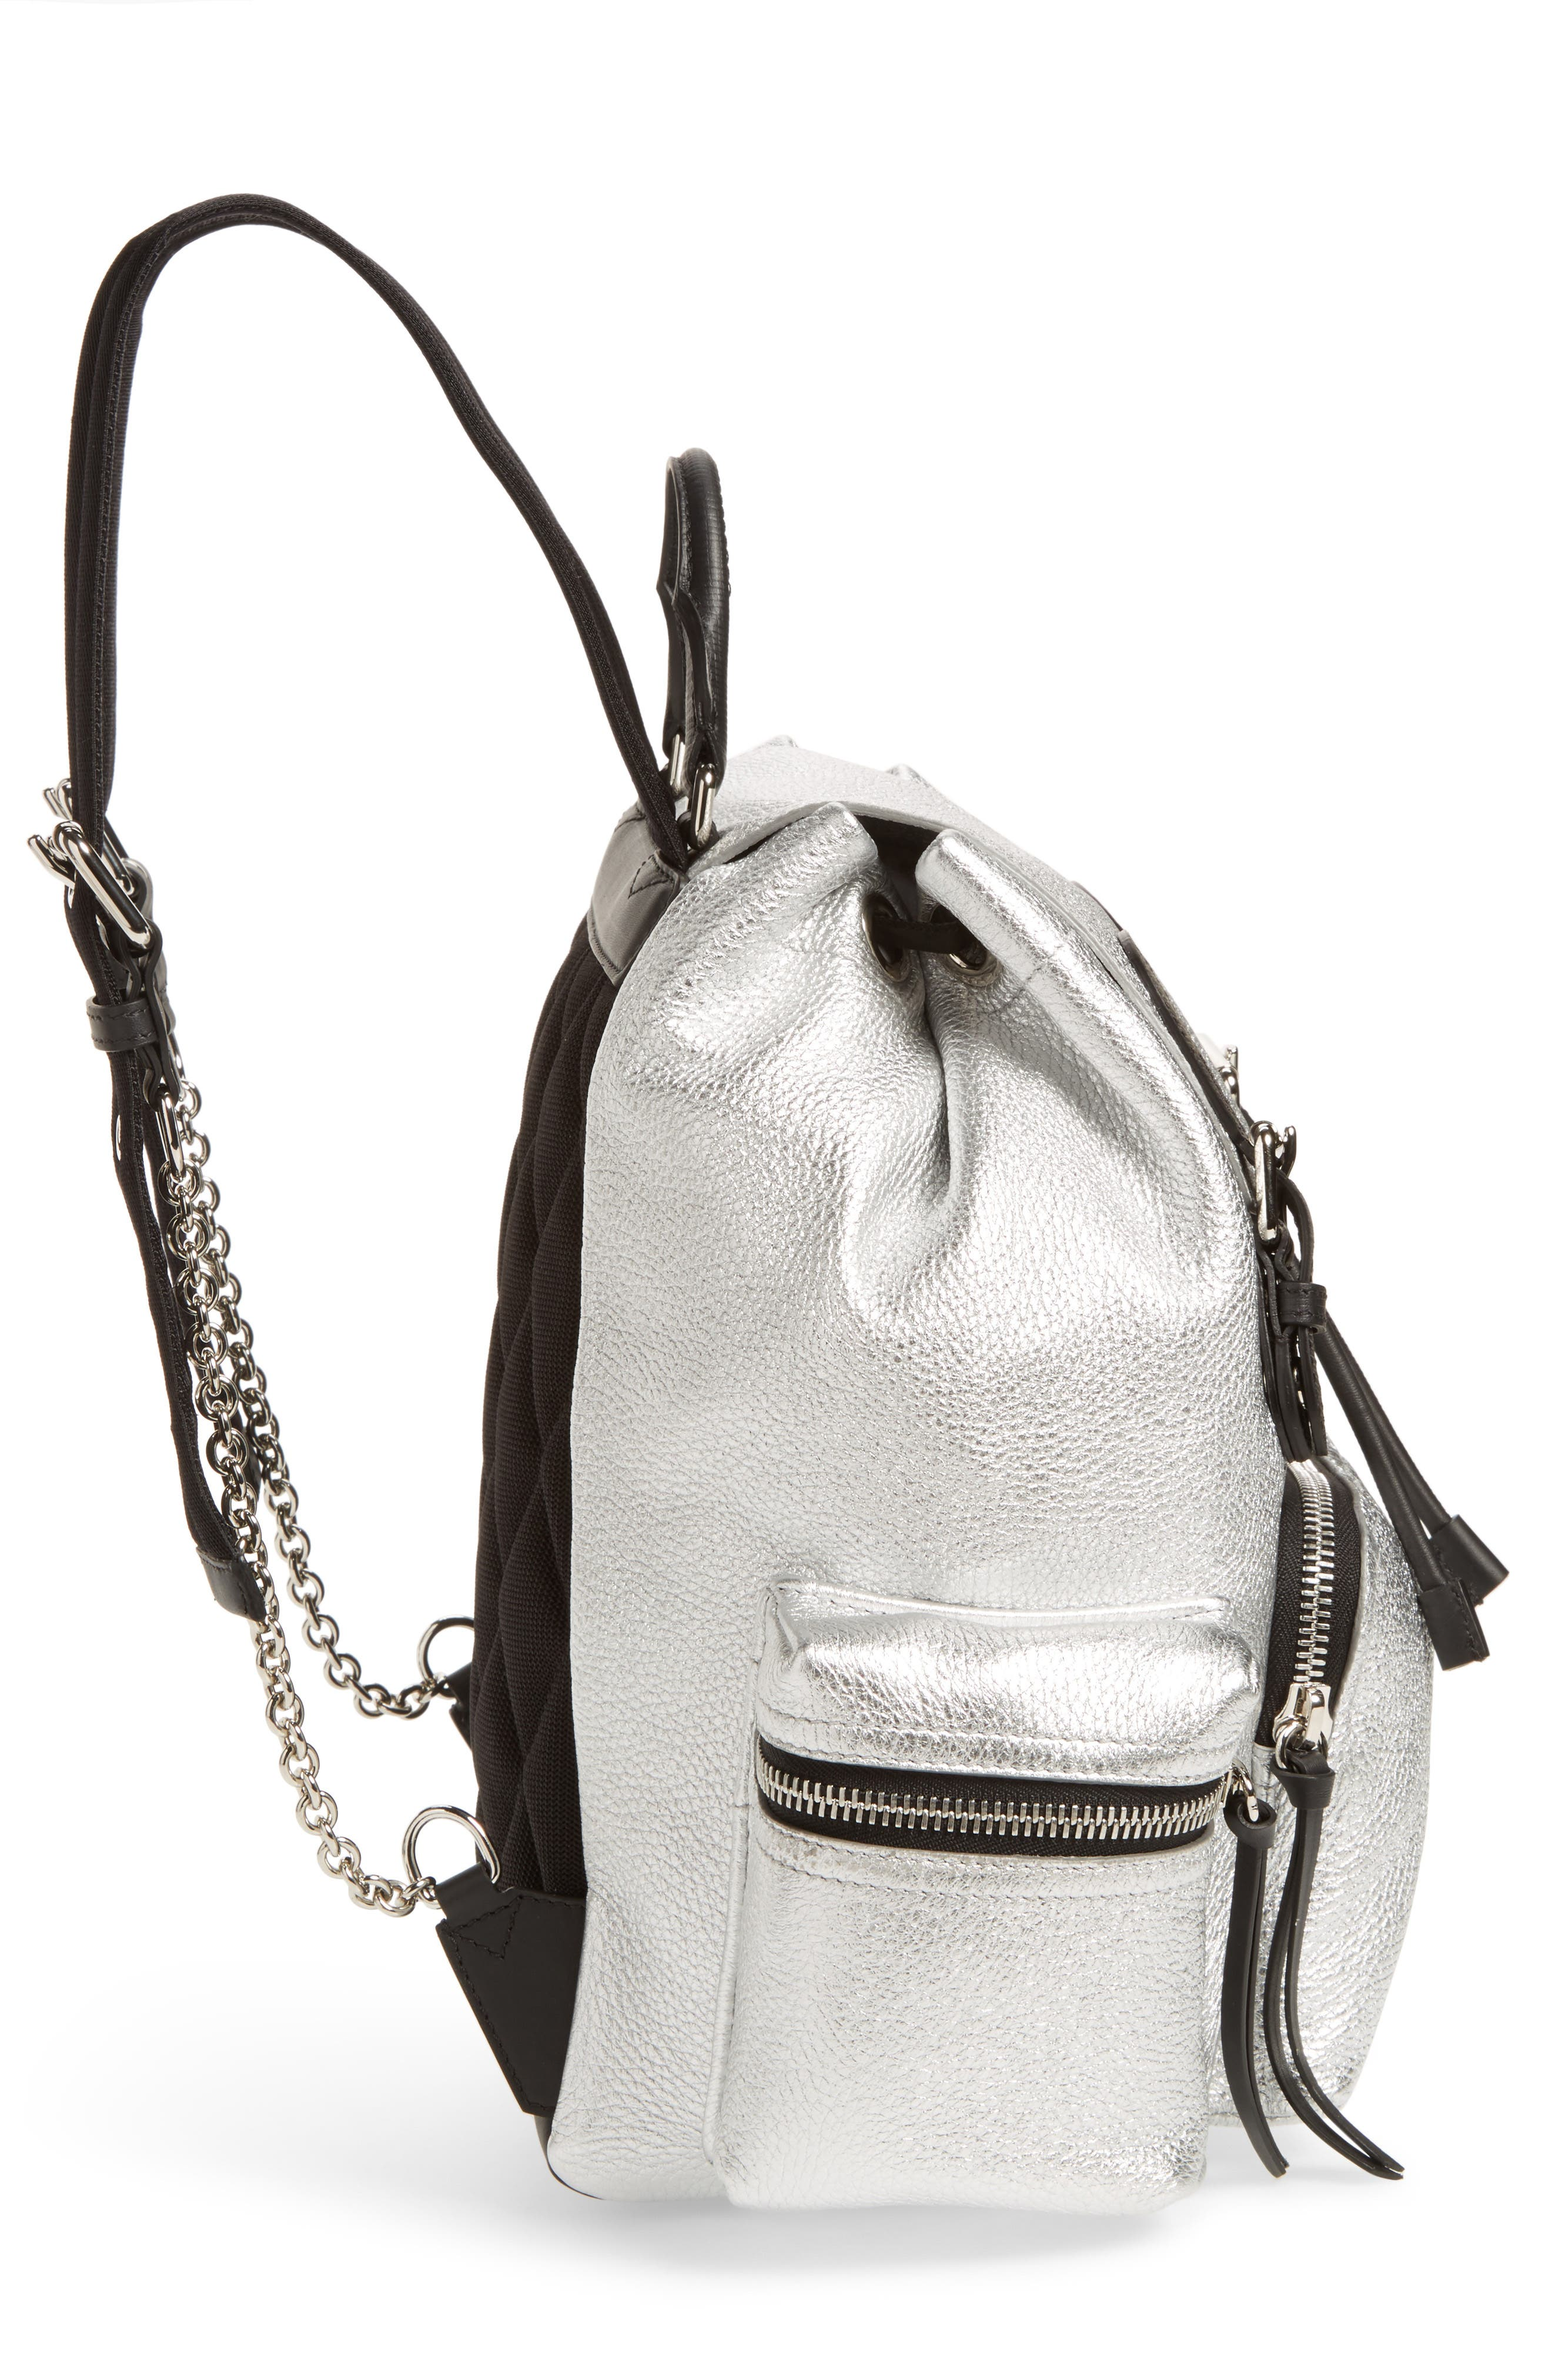 Medium Rucksack Metallic Leather Backpack,                             Alternate thumbnail 5, color,                             Silver